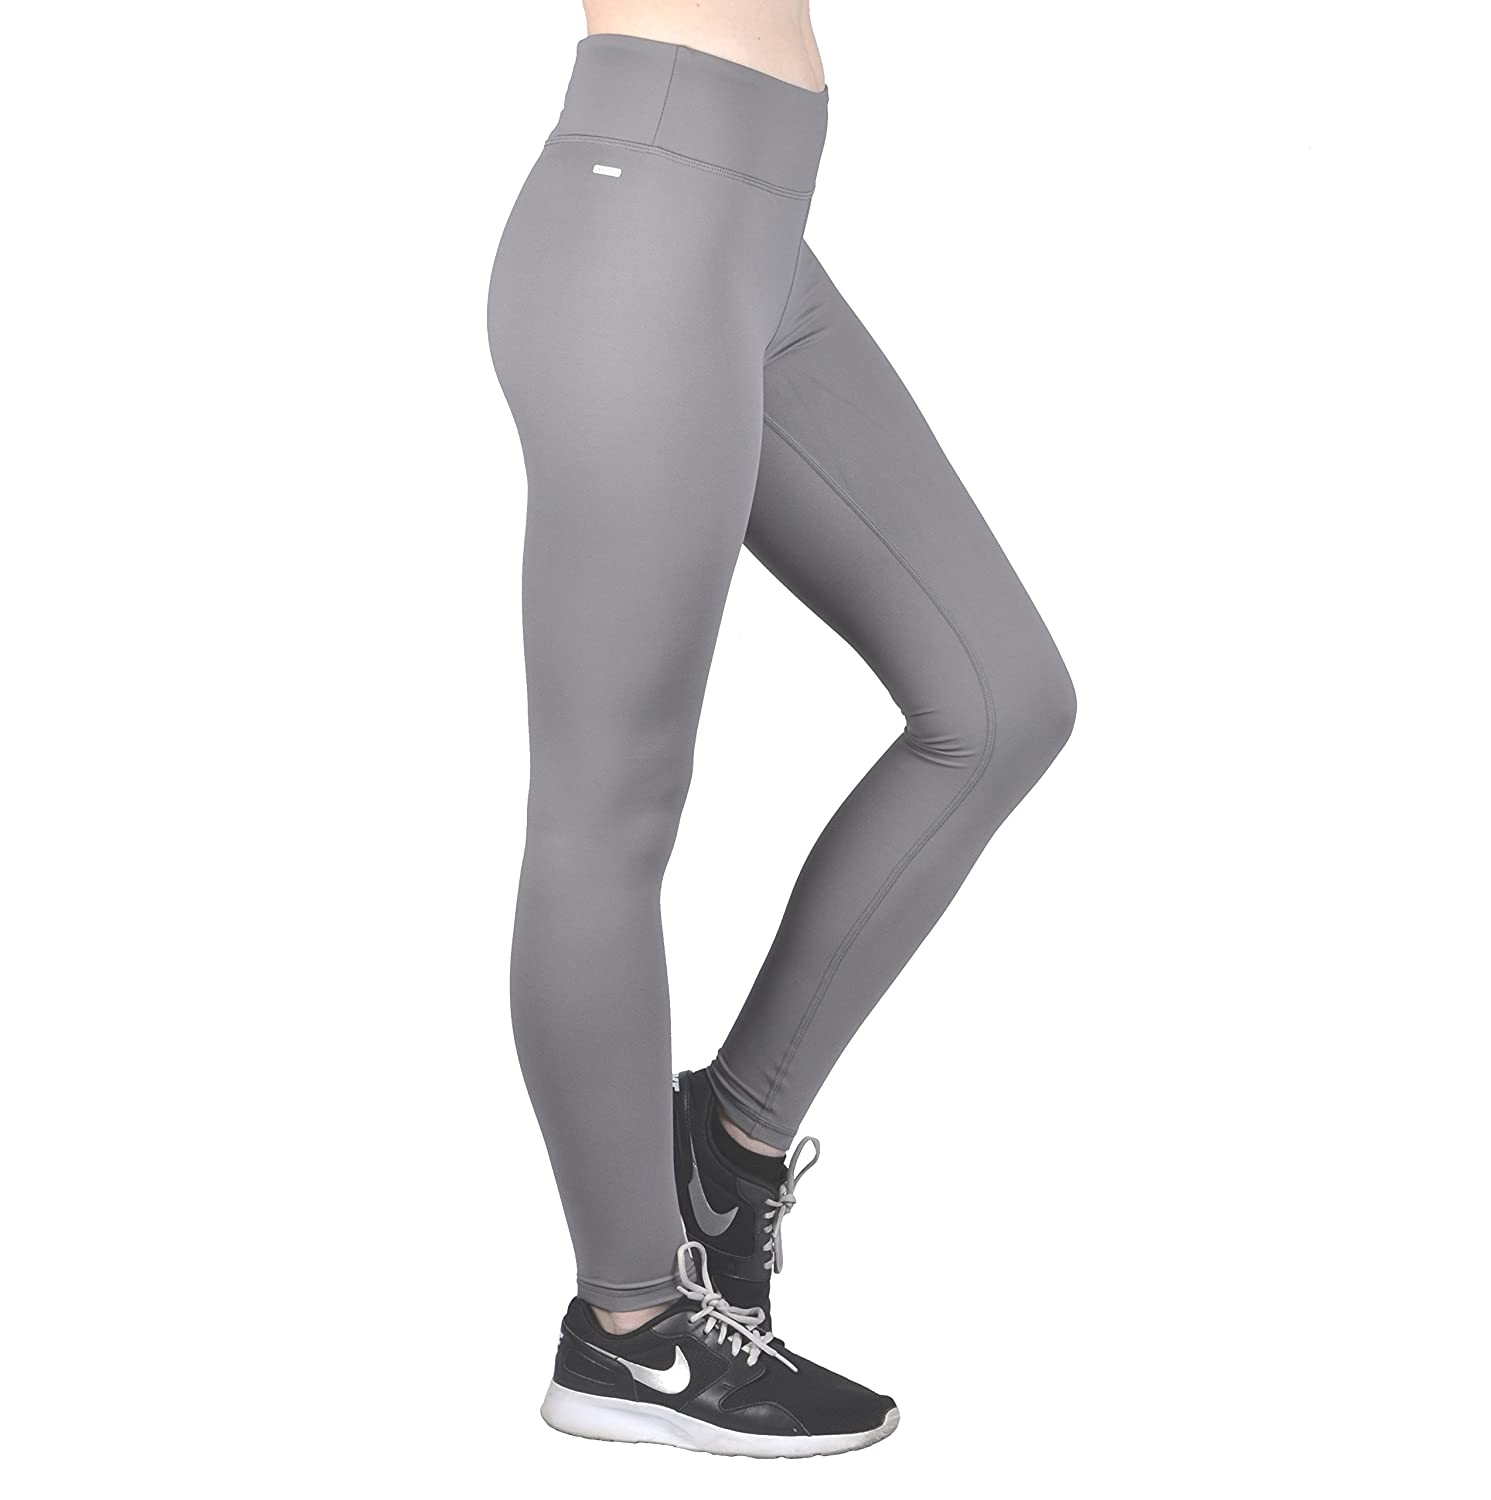 2117bfdc46ab4 Amazon.com: Dynamic Athletica Compression Workout Leggings - Workout  Clothes and Yoga Pants: Sports & Outdoors